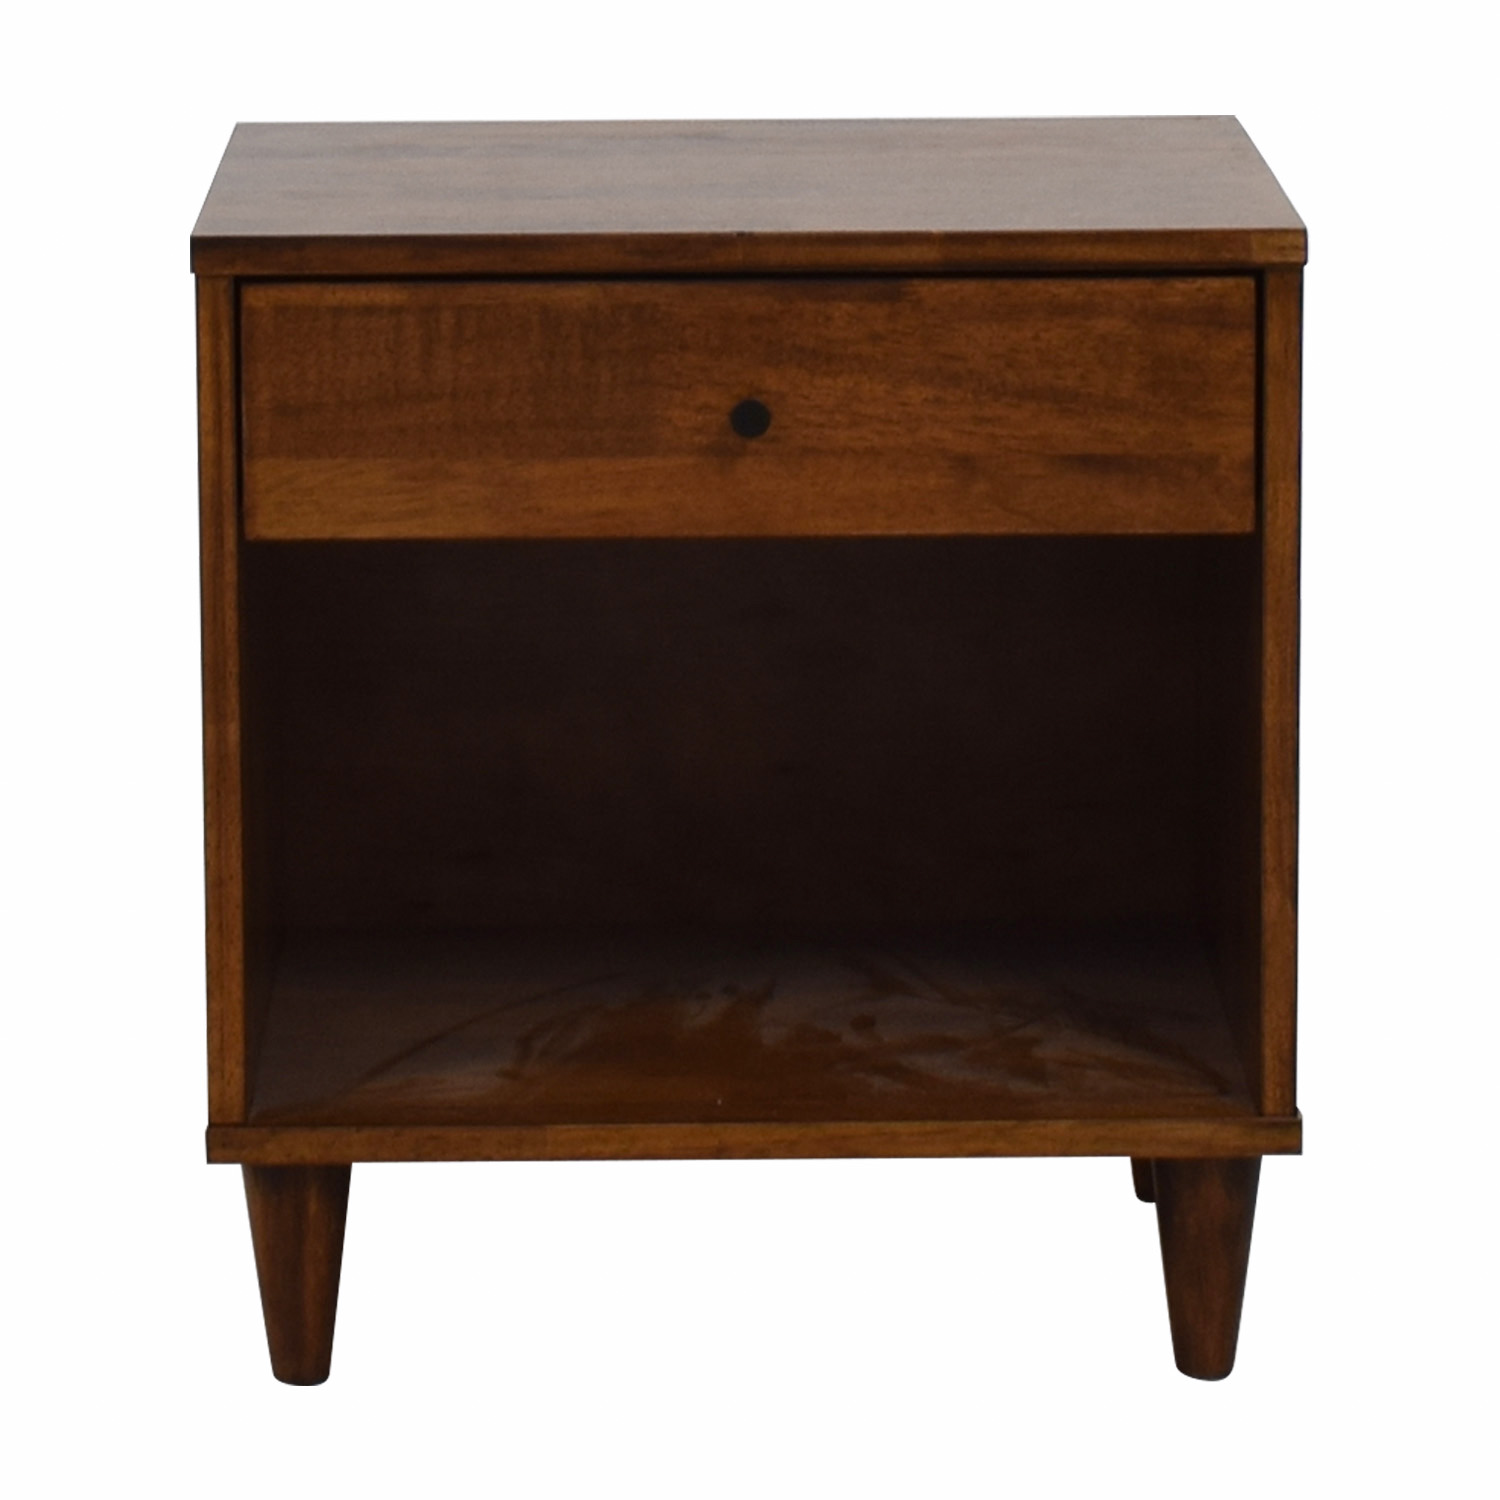 Vilas Tobacco Rubberwood Single Drawer Nightstand Vilas